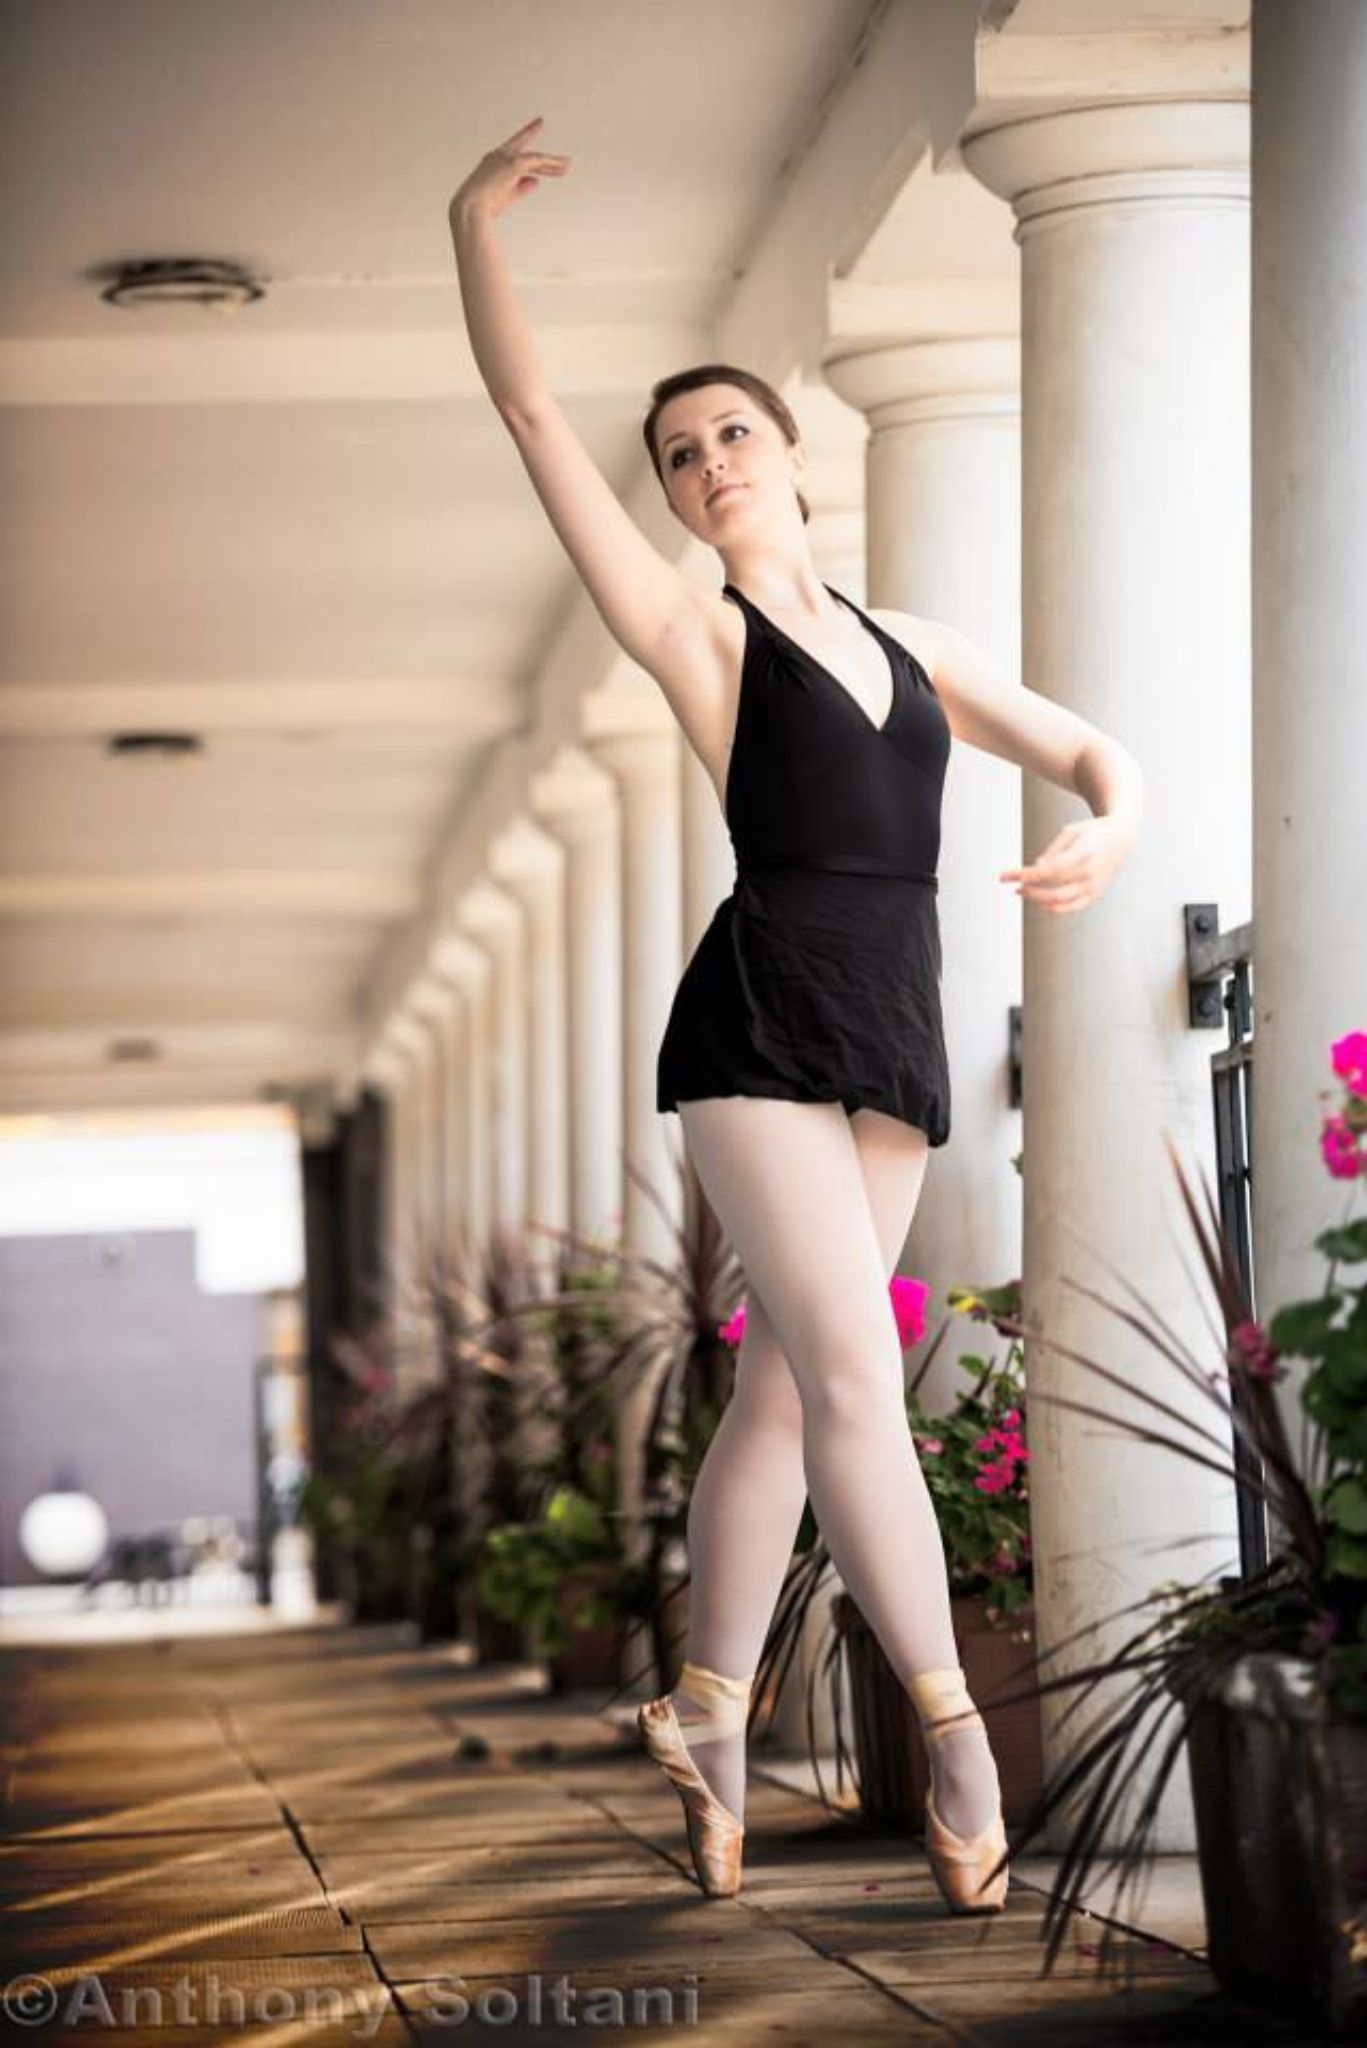 bellerina by anthonysoltaniphotography